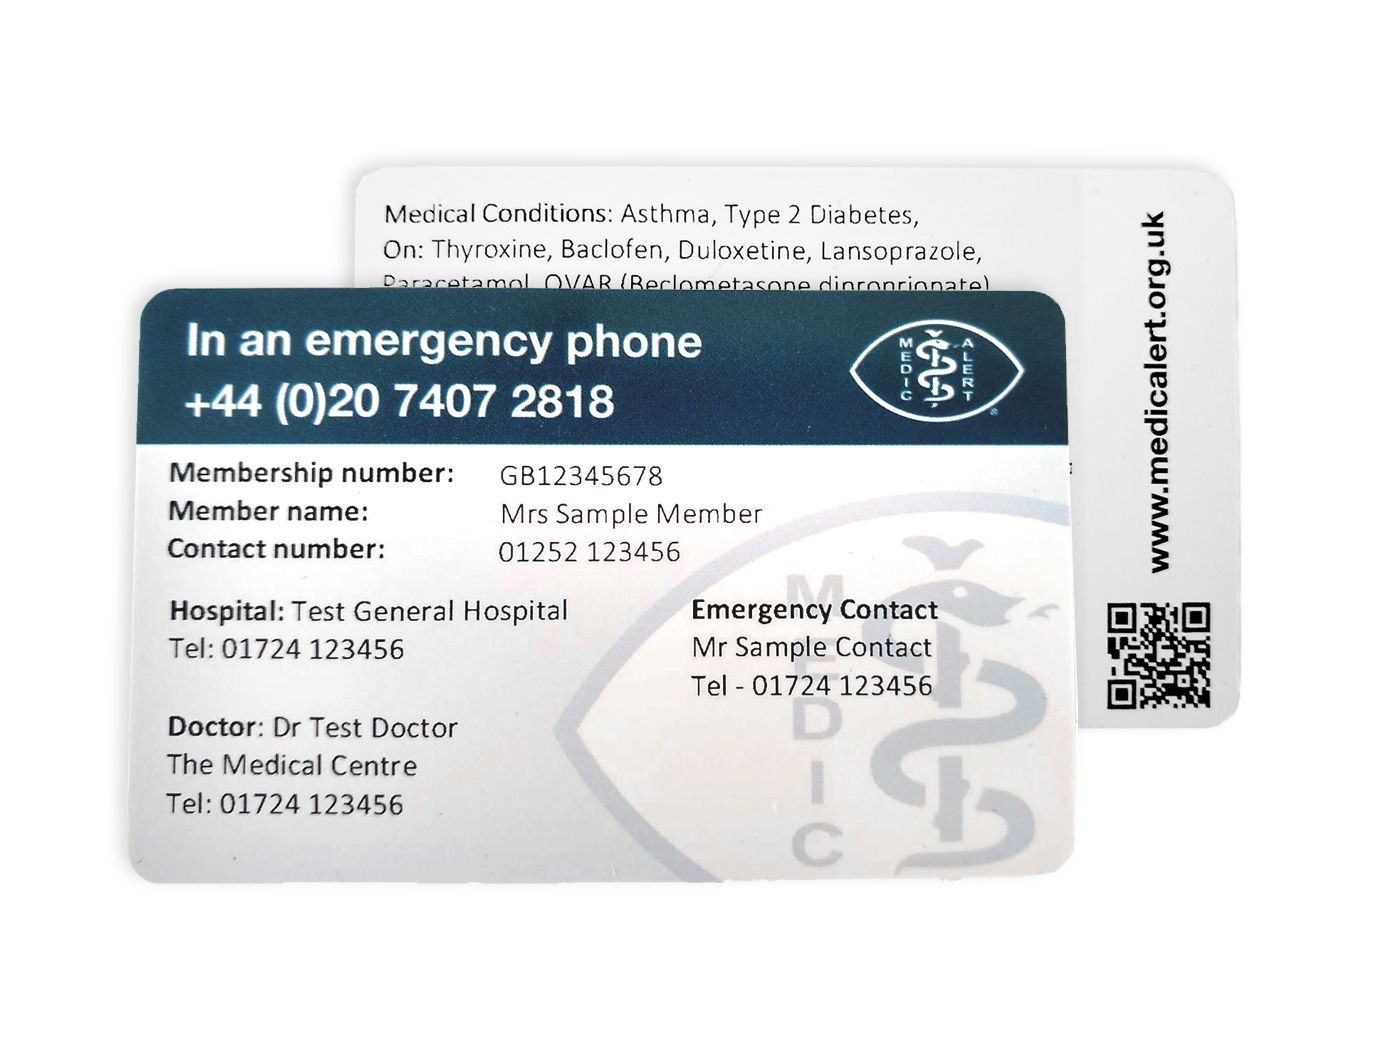 The Marvelous Wallet Card In Medical Alert Wallet Card Template Digital Imagery Below Is Section Of Medical Aler Card Template Medical Alert Business Template Wallet size certification card template